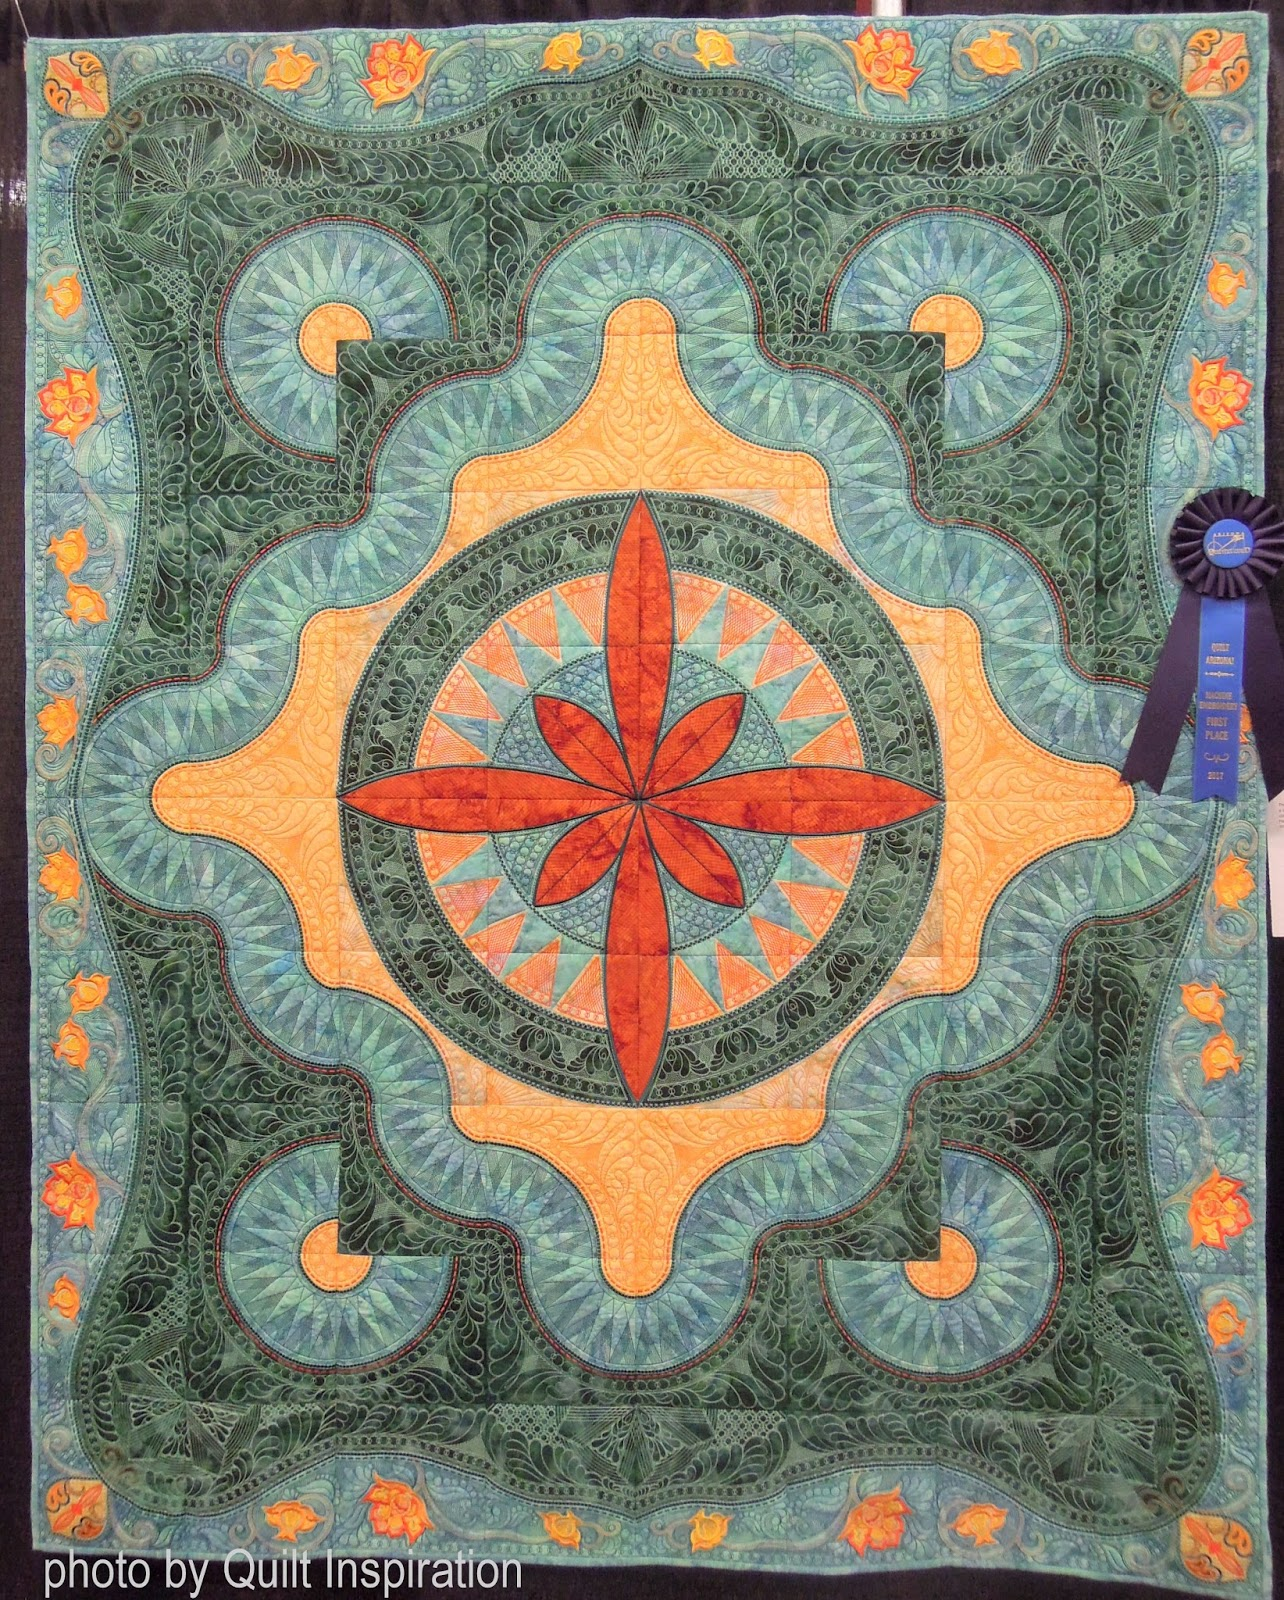 Quilt Inspiration Quilt Arizona 2017 Day 5